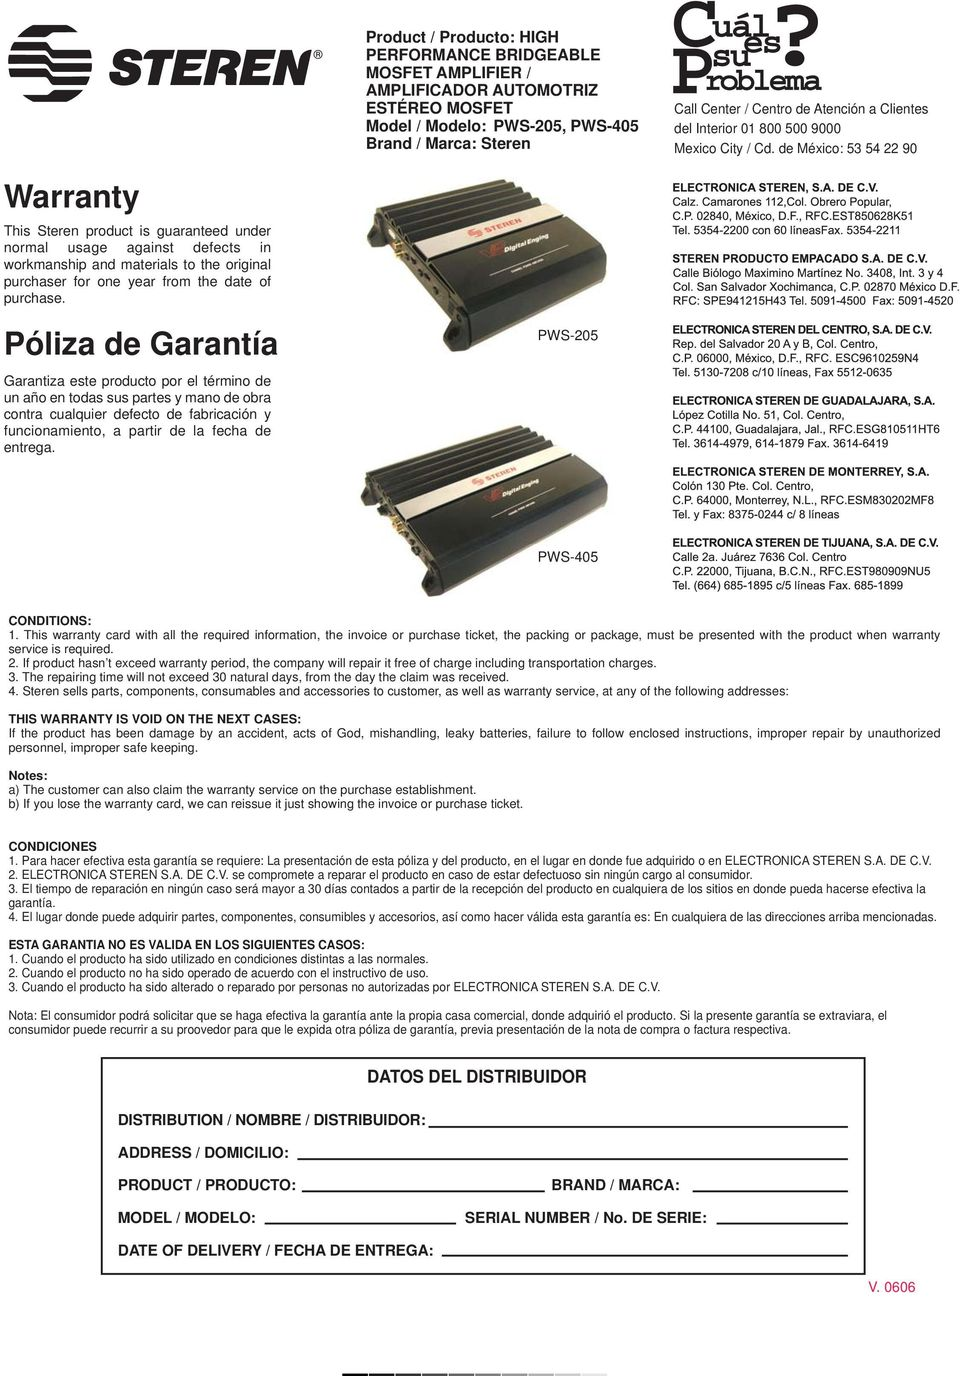 de México: 53 54 22 90 Warranty This Steren product is guaranteed under normal usage against defects in workmanship and materials to the original purchaser for one year from the date of purchase.